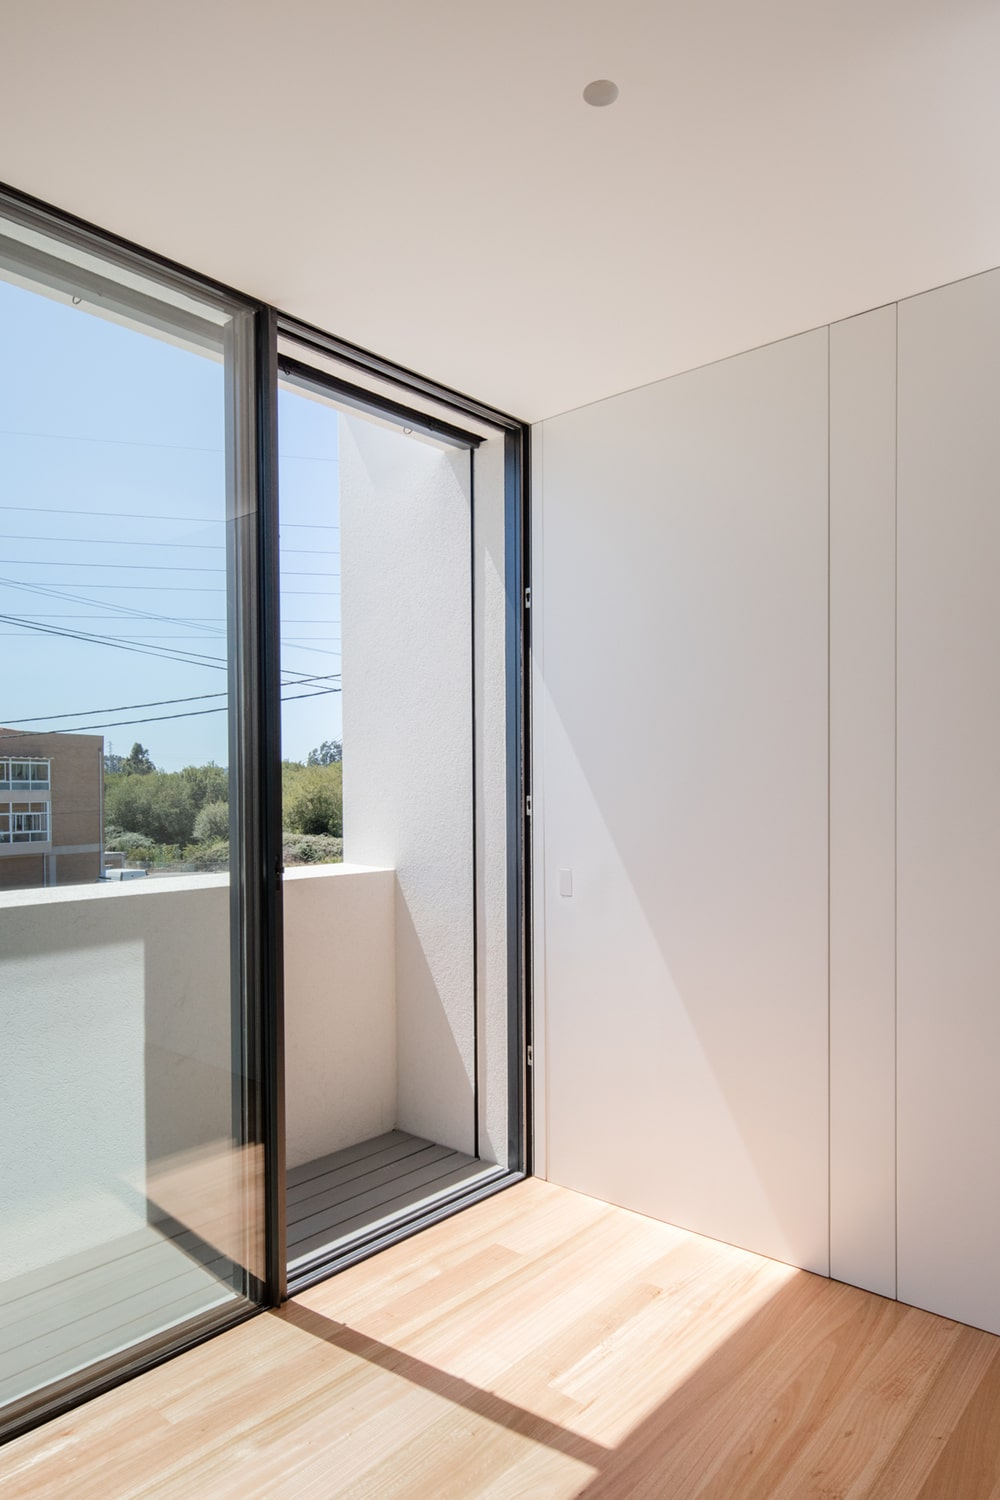 This is a corner of the upper level with a set of sliding glass doors leading to a balcony.